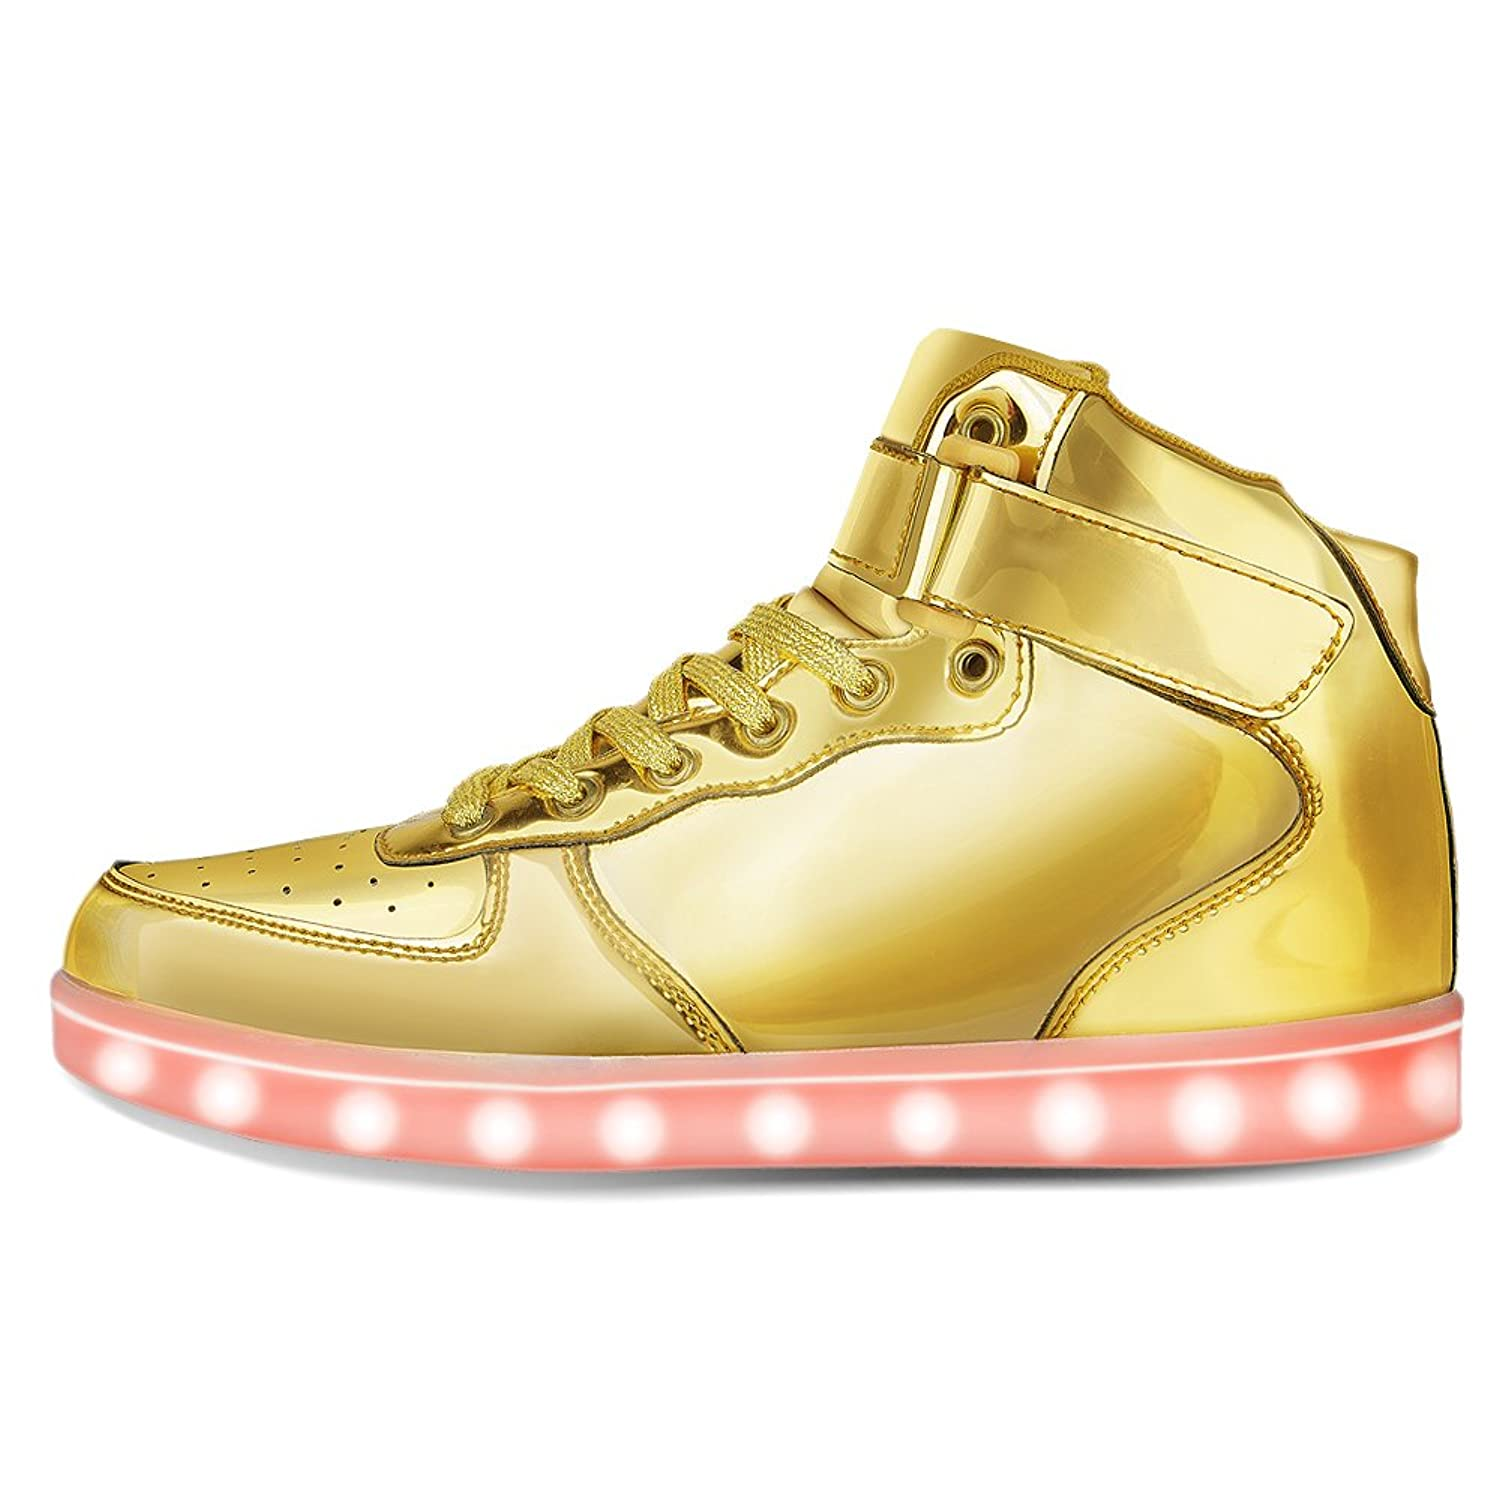 kgoing high top led light up shoes 11 colors flashing sneakers for mens womens ebay. Black Bedroom Furniture Sets. Home Design Ideas